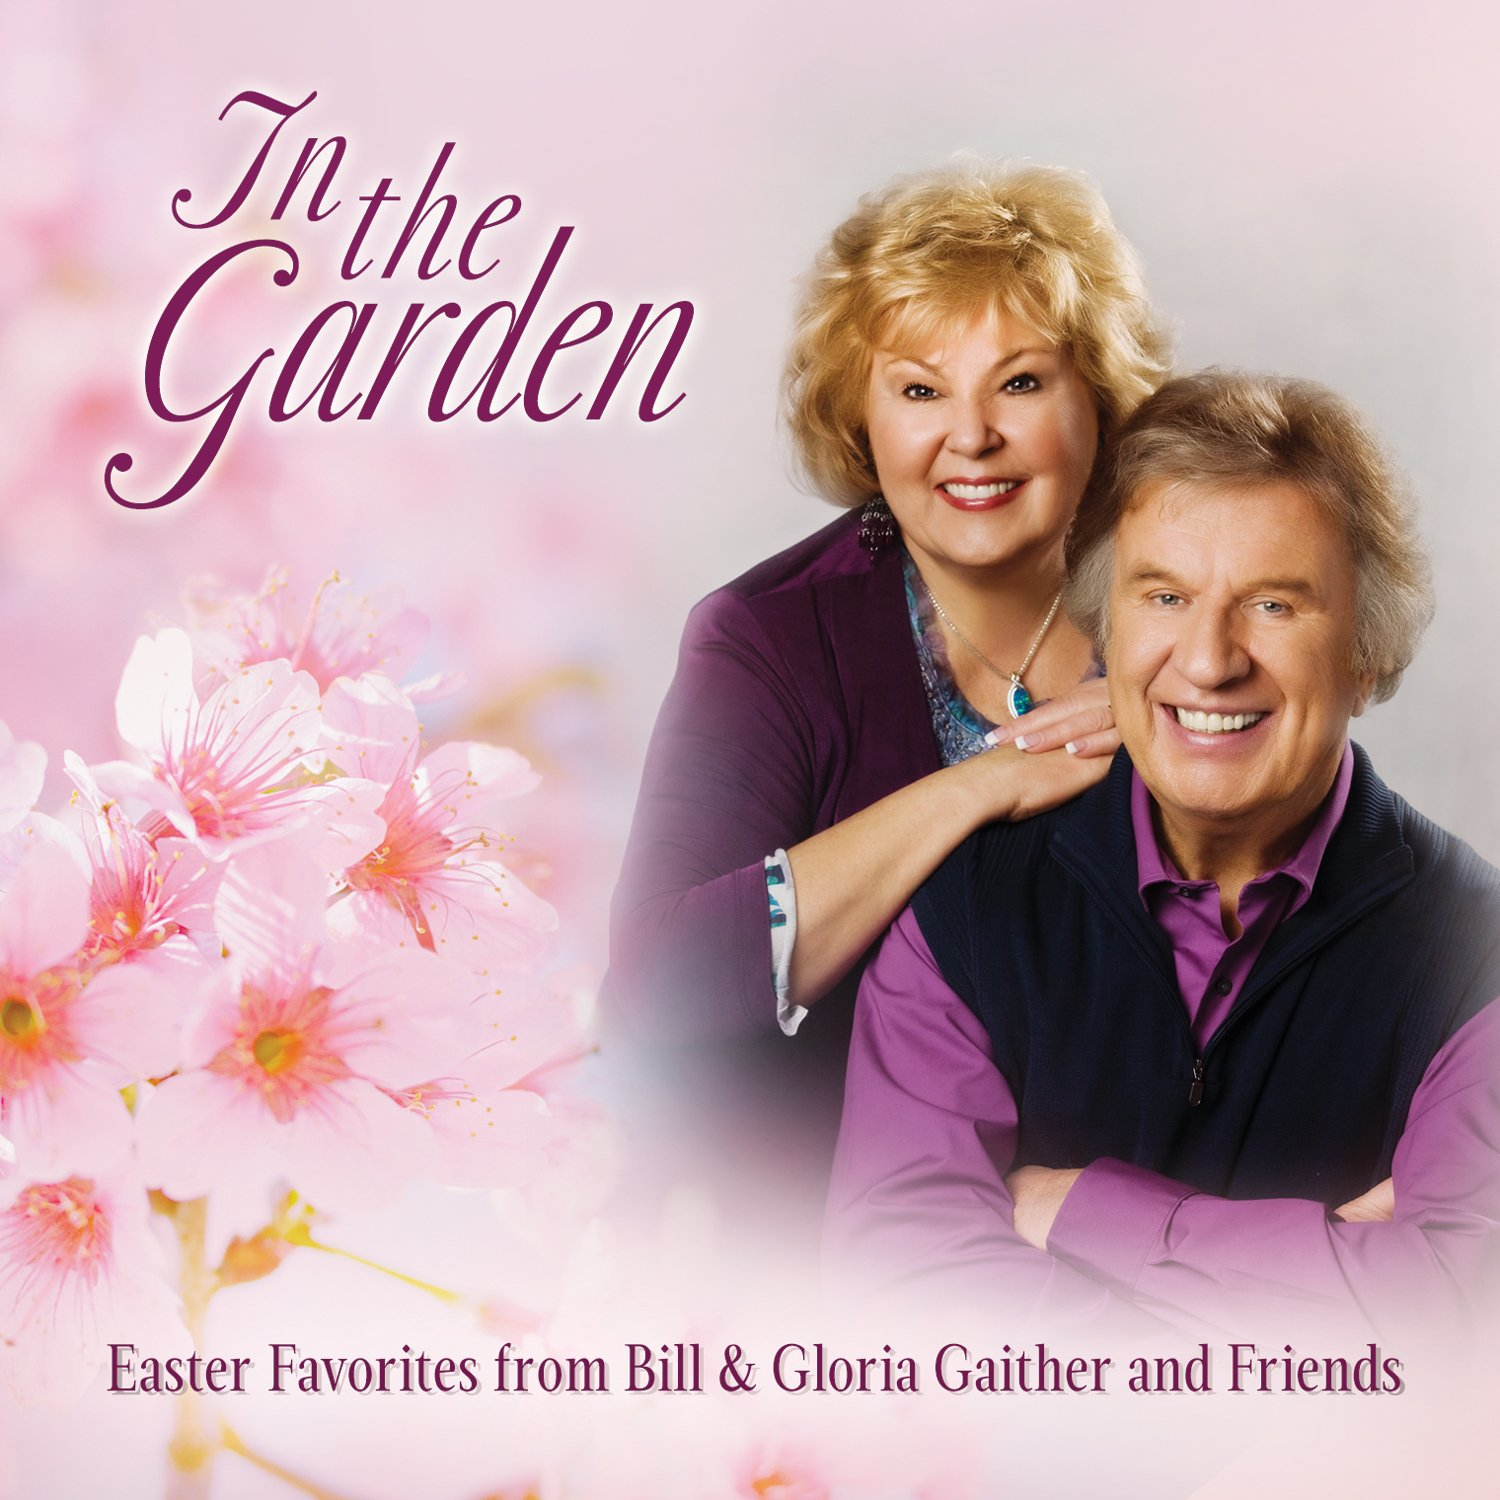 In The Garden Easter Favorites From Bill & Gloria Gaither